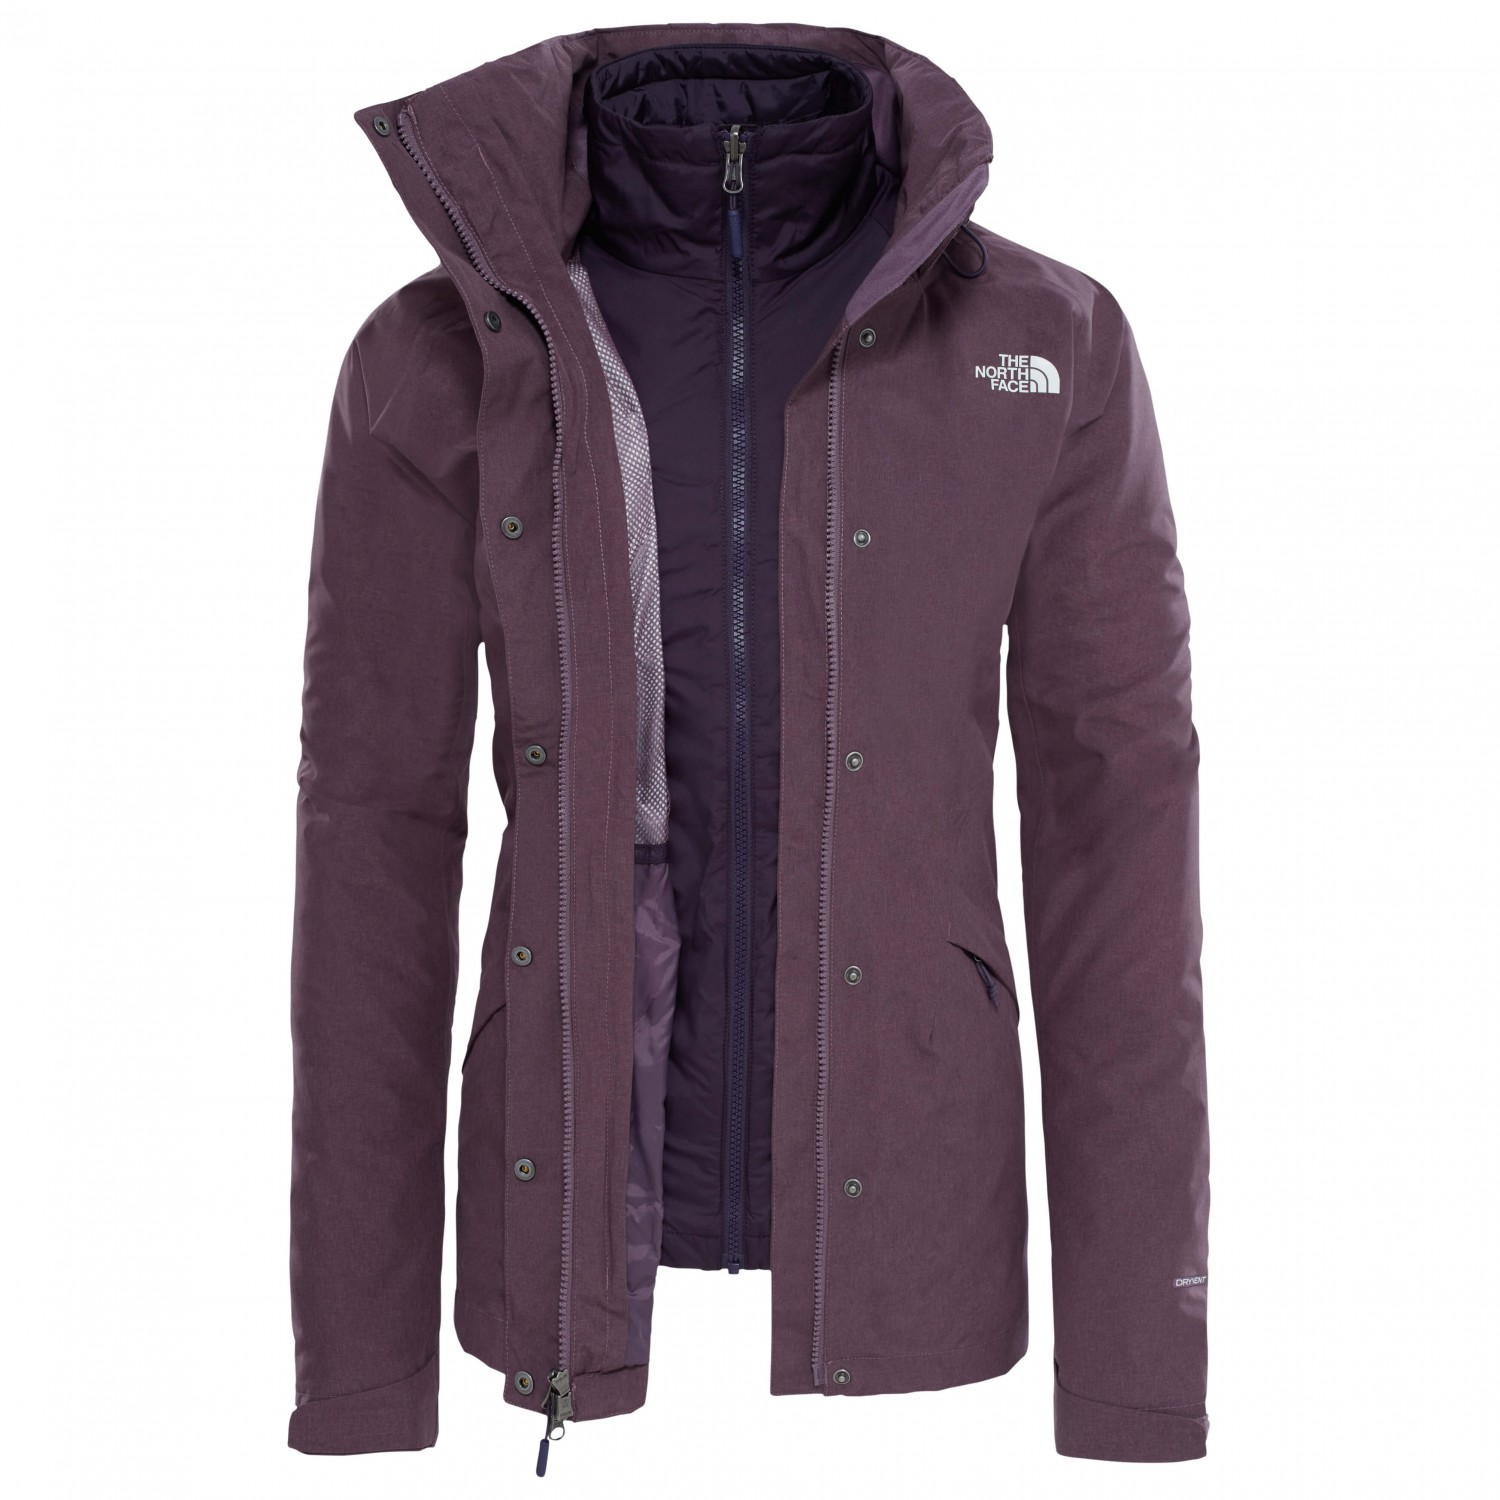 3a0d20526ba3 The North Face Naslund Triclimate Jacket - 3-In-1 Jacket Women s ...